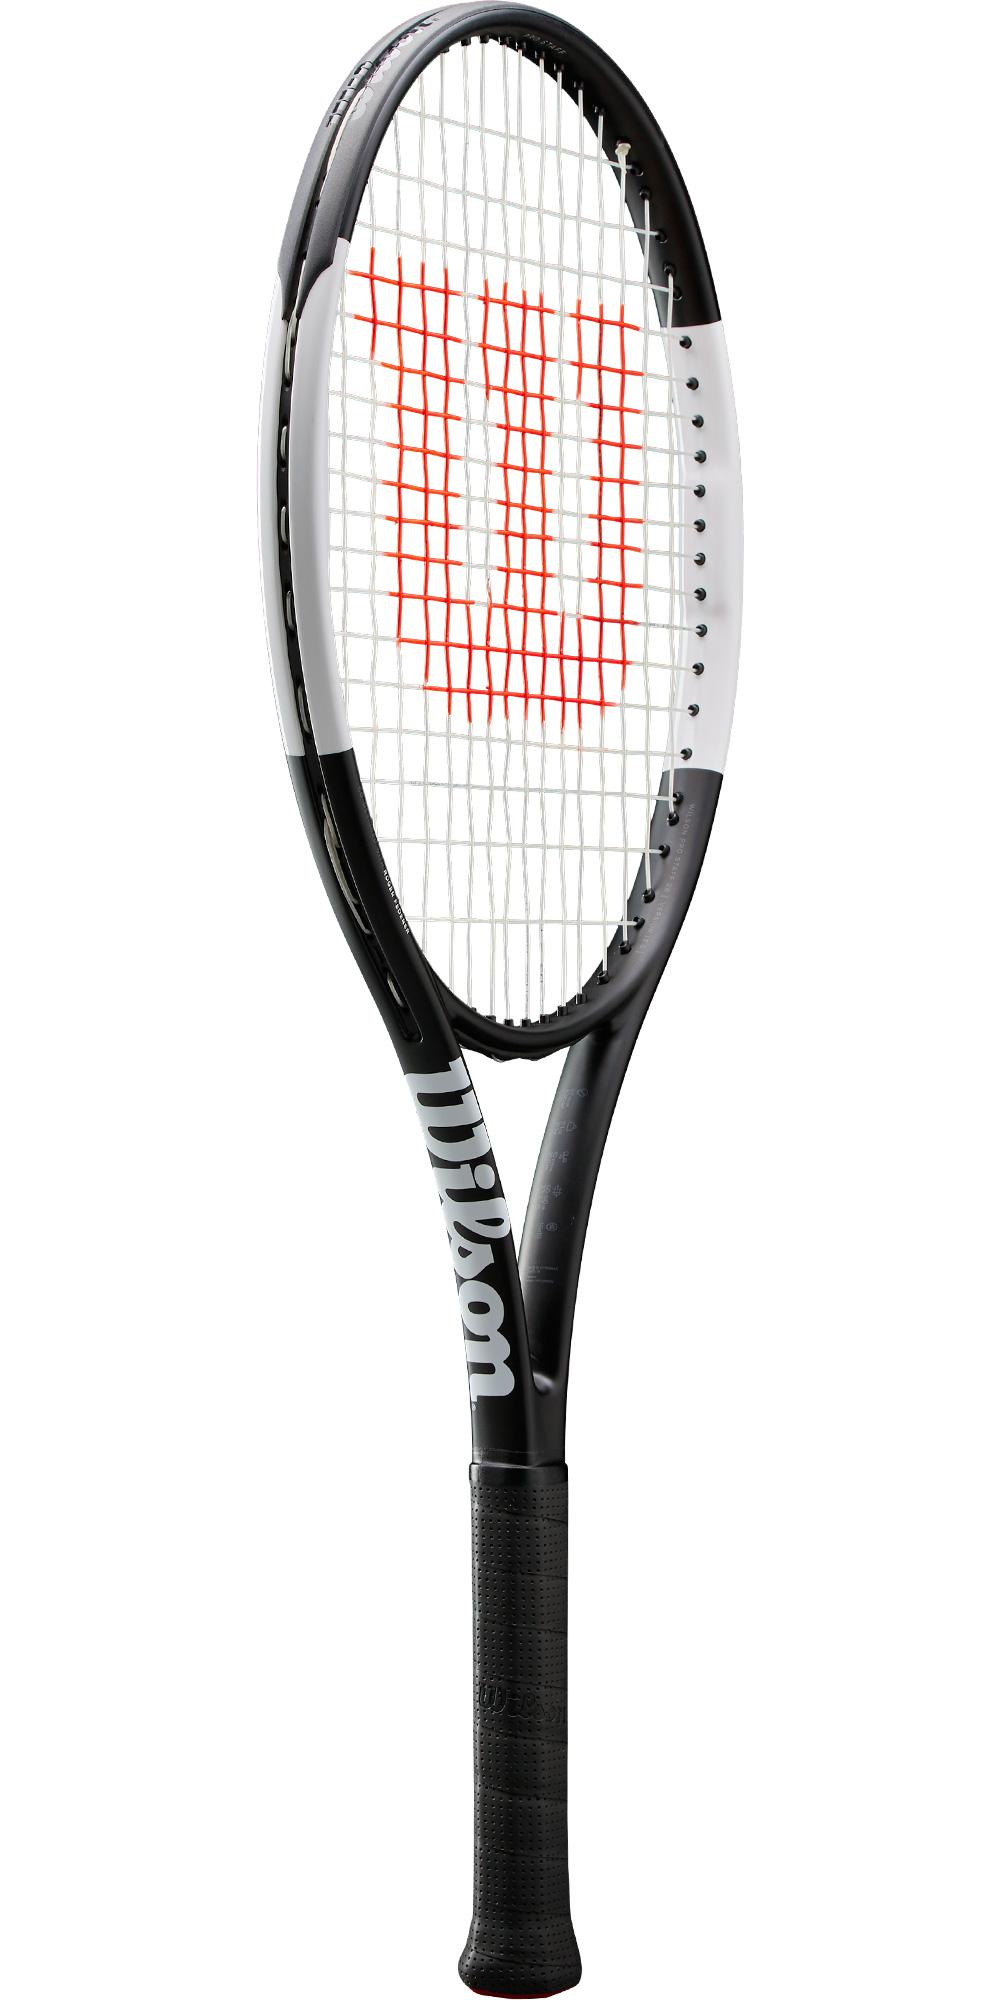 Wilson Pro Staff 26 Inch Junior Tennis Racket - Tennisnuts.com | 1000 x 2000 jpeg 113kB